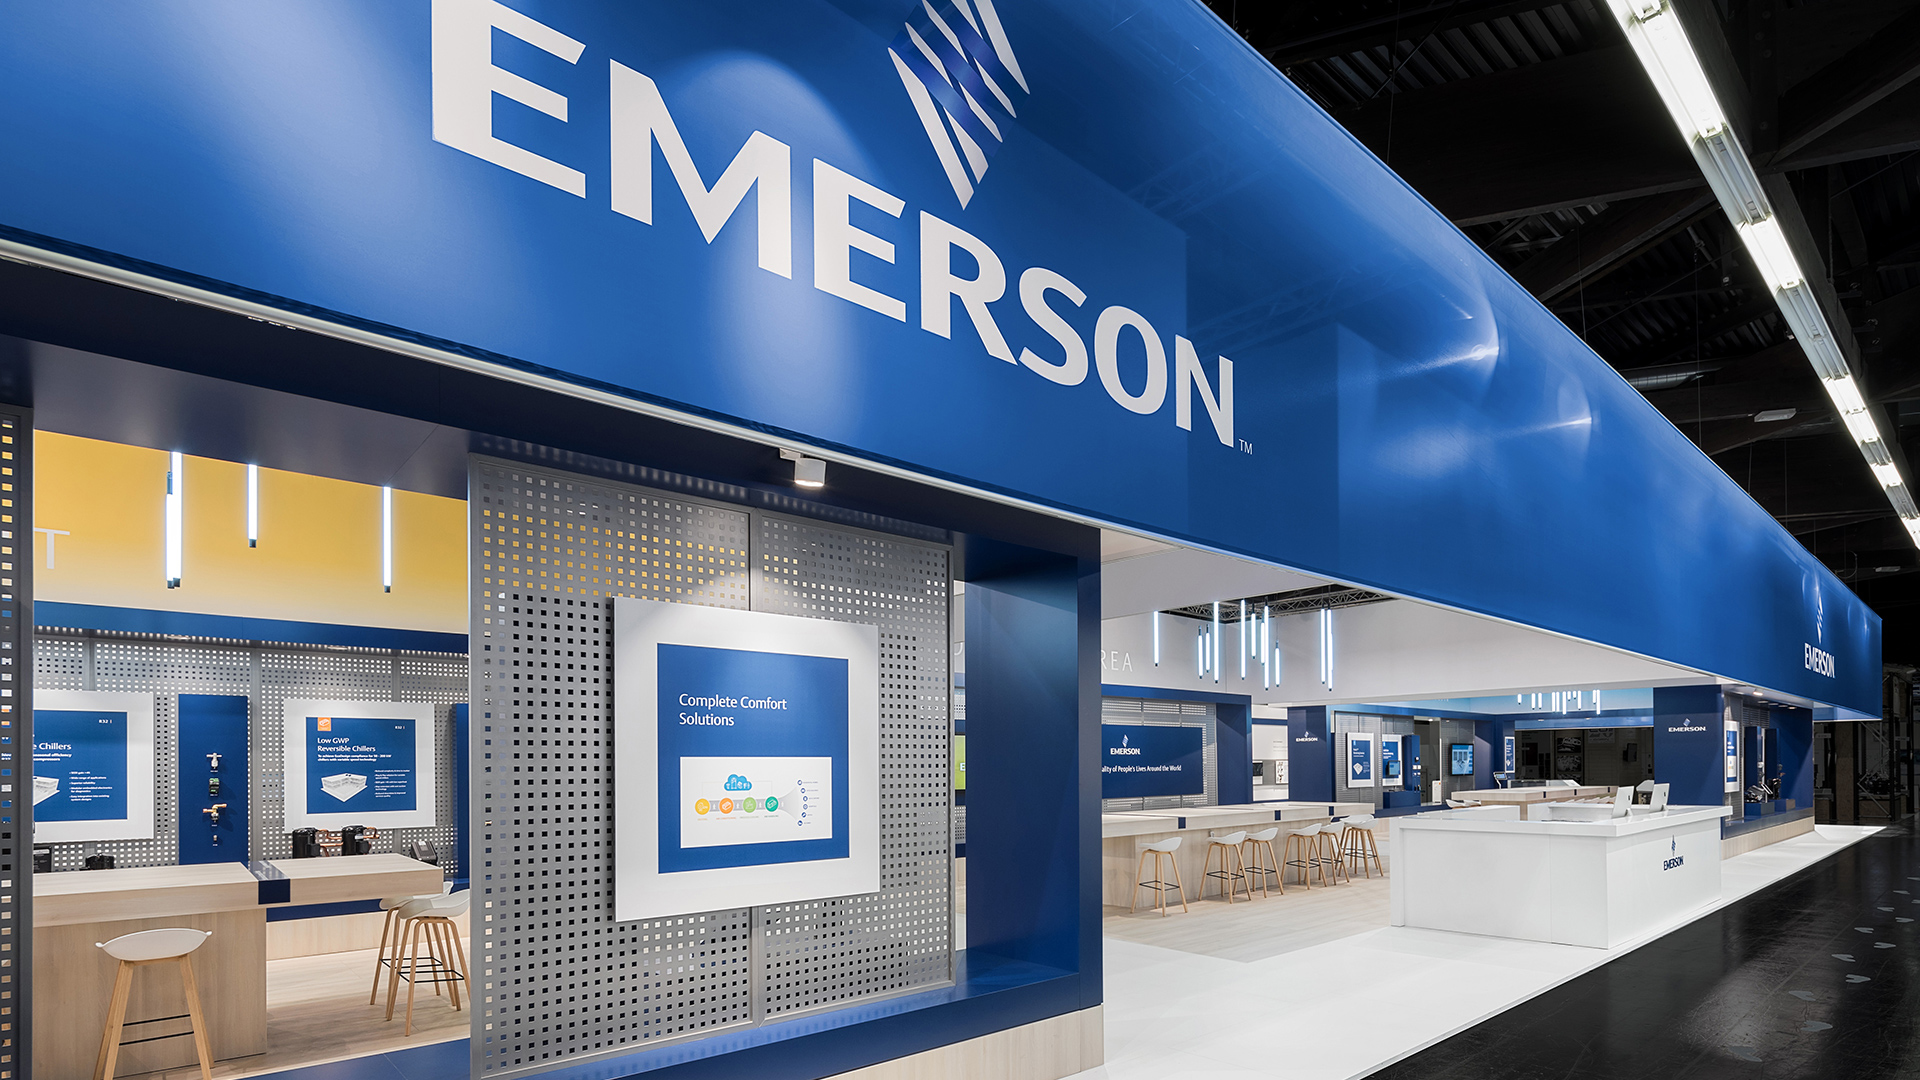 Dart stages the Emerson fair stand at the Chillventa 2018